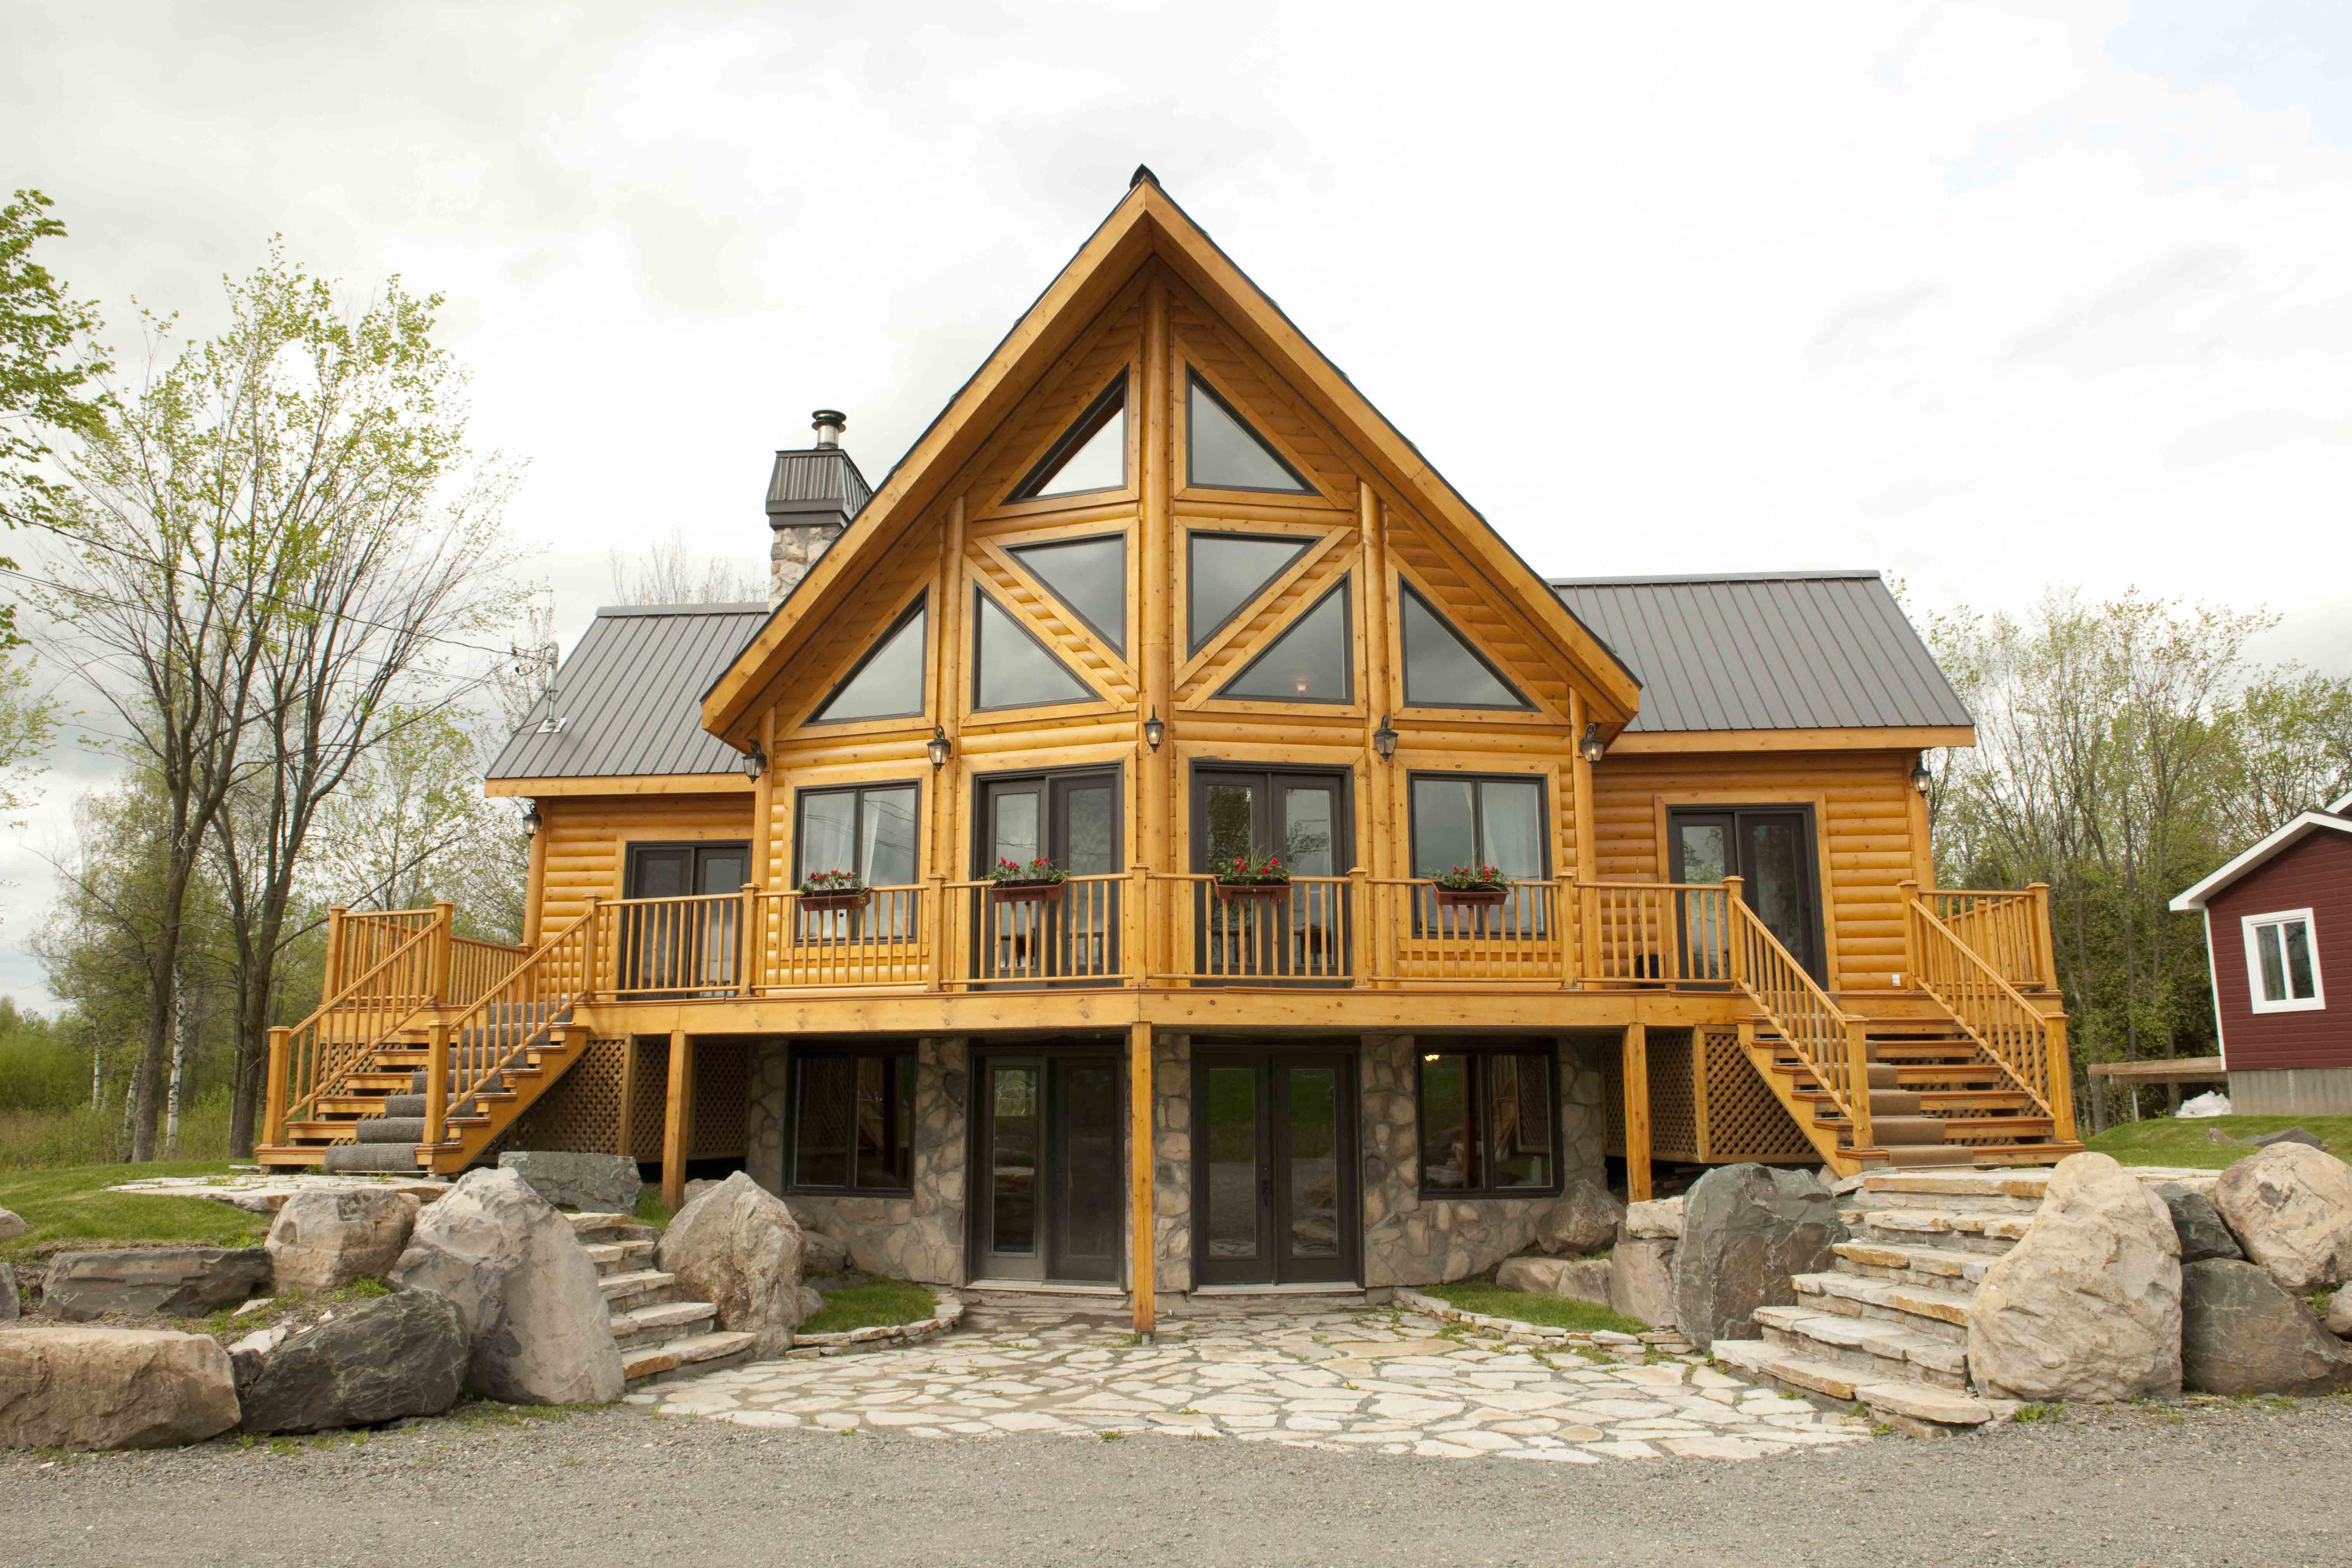 Timber Block Insulated Log Homes Exceeds The Building Codes In Pennsylvania